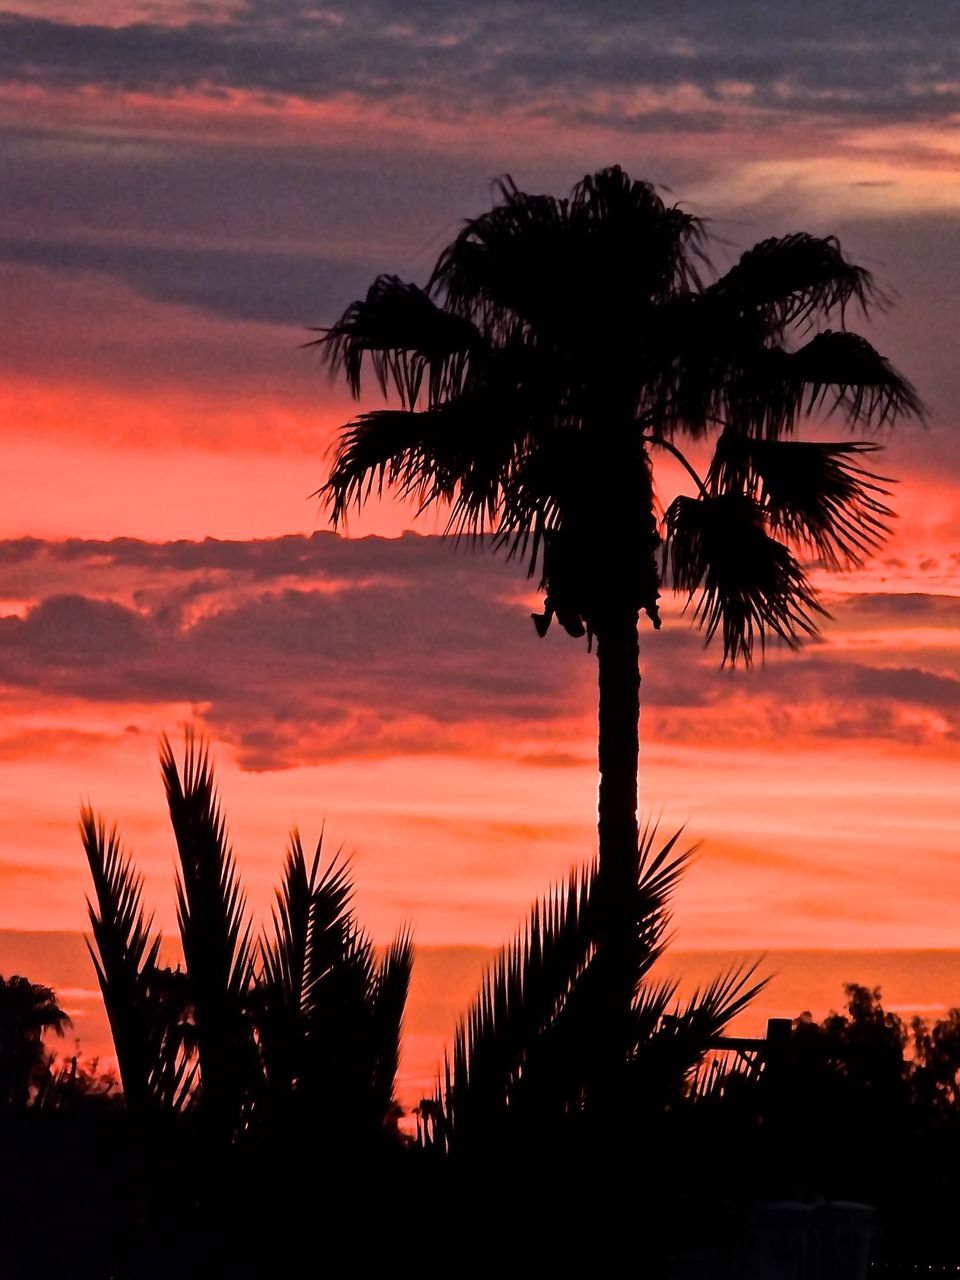 sunset, palm tree, tree, silhouette, beauty in nature, scenics, sky, nature, tranquility, tranquil scene, orange color, tree trunk, idyllic, growth, cloud - sky, outdoors, dramatic sky, low angle view, no people, travel destinations